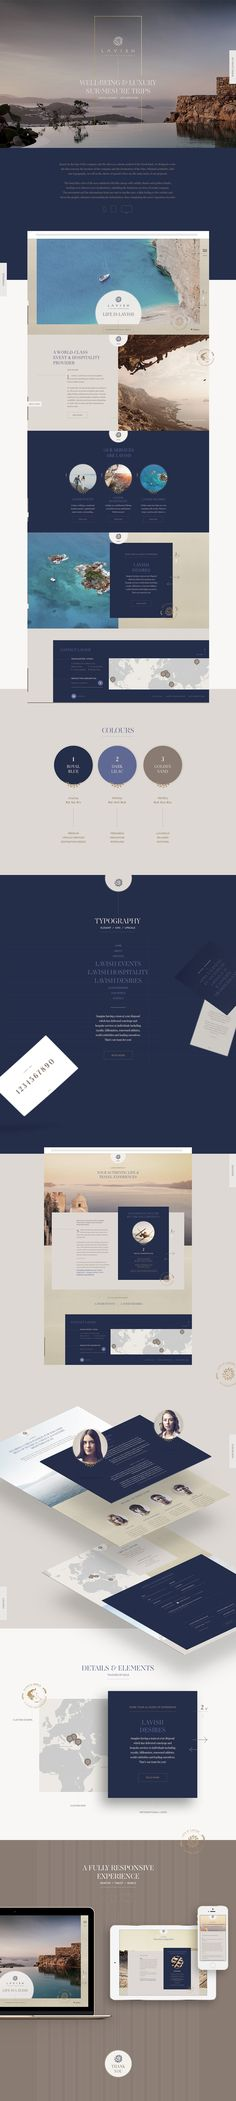 Lavish website on behance app design, web design company, layout design, web design Web Design Trends, Layout Design, Layout Web, Design De Configuration, Design Sites, Interaktives Design, Web Ui Design, Branding Design, Luxury Branding